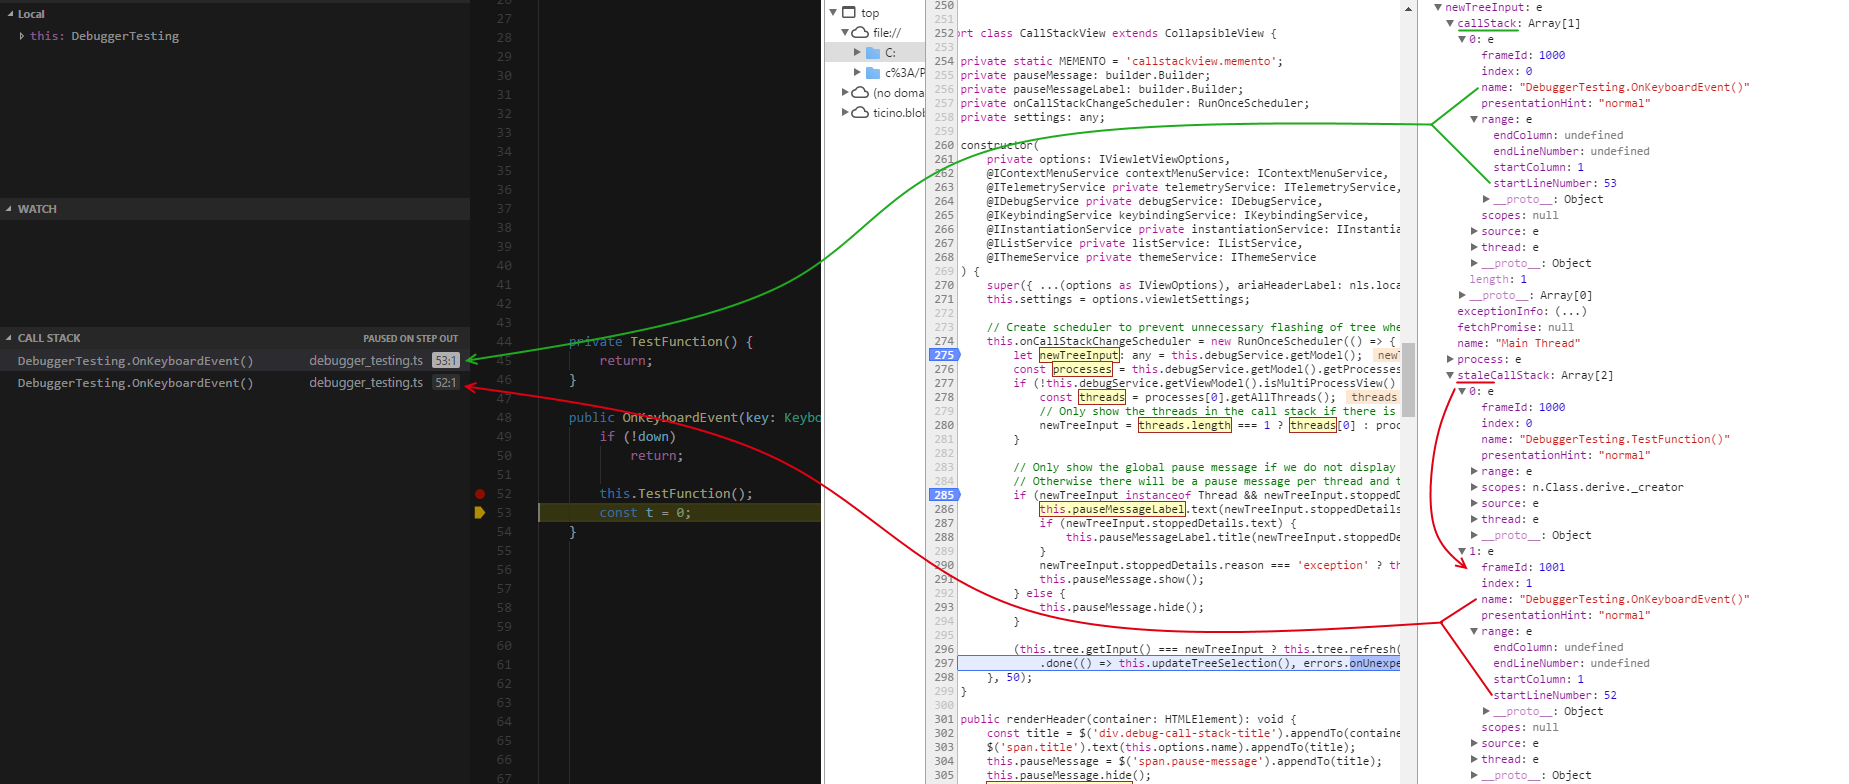 The Green Shows Stack Frame I Expect To Be On Callstack Red Stale Keep Getting Left With